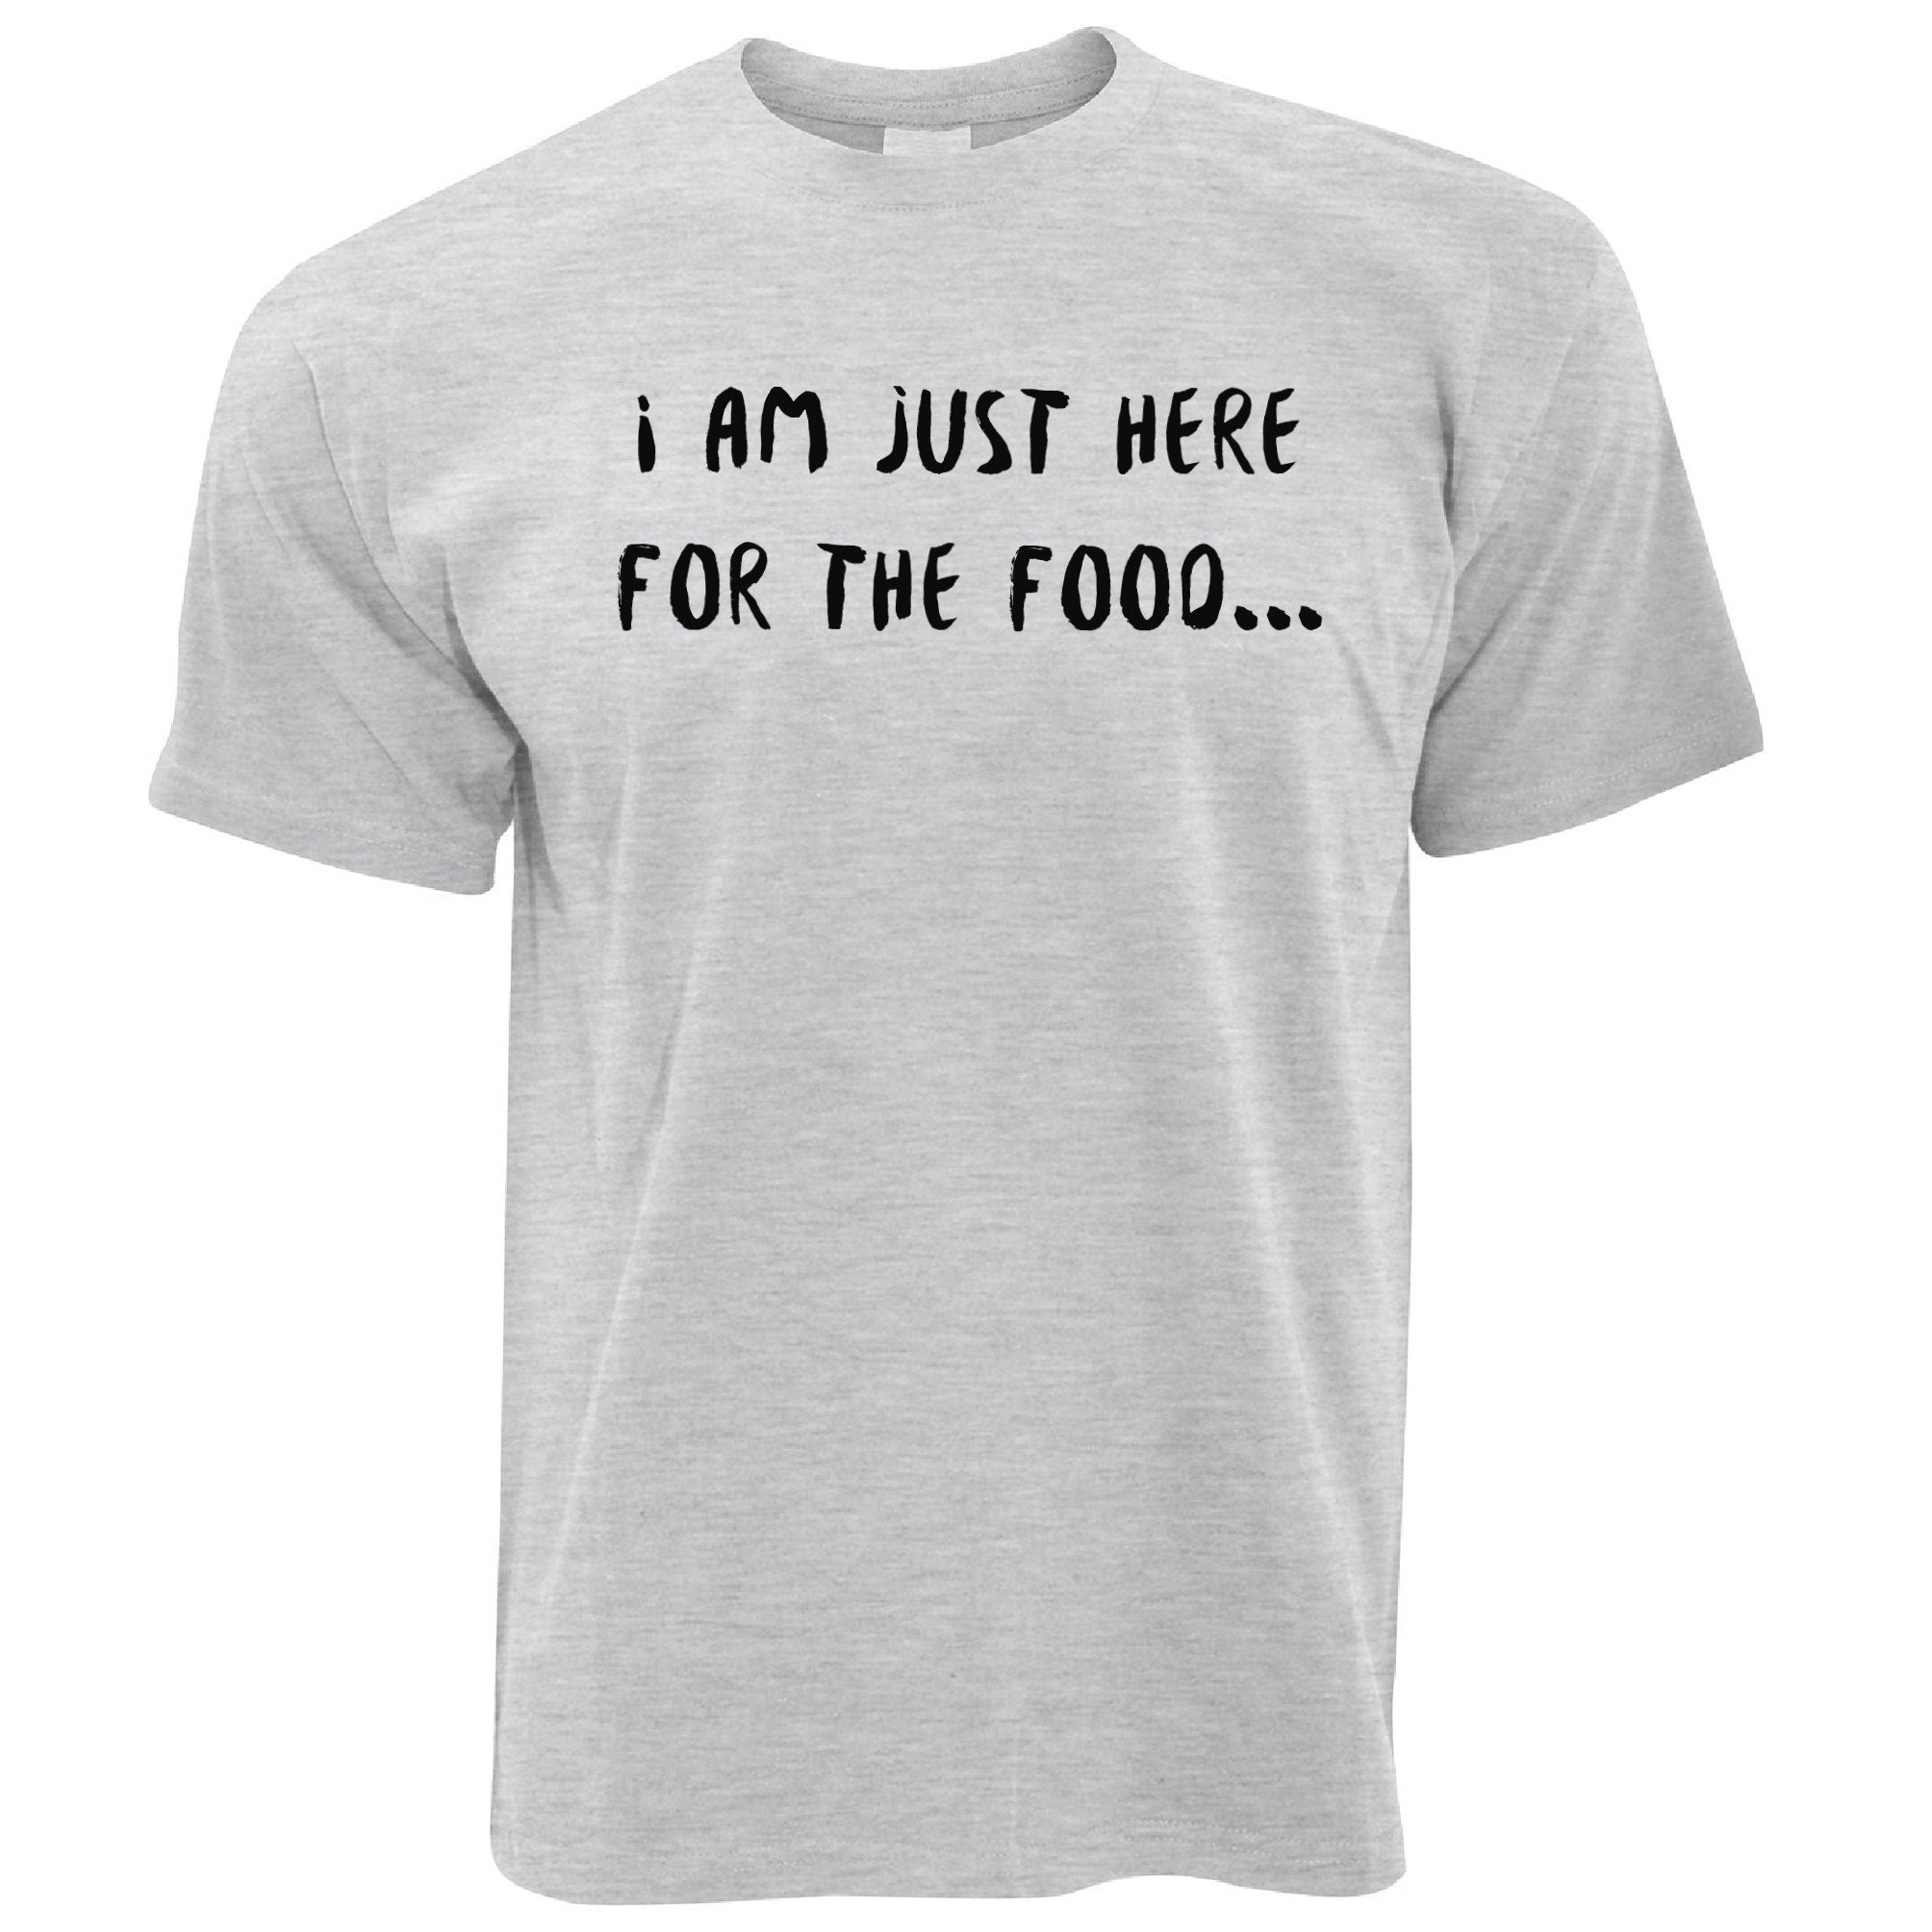 Novelty T Shirt I'm Just Here For The Food Slogan